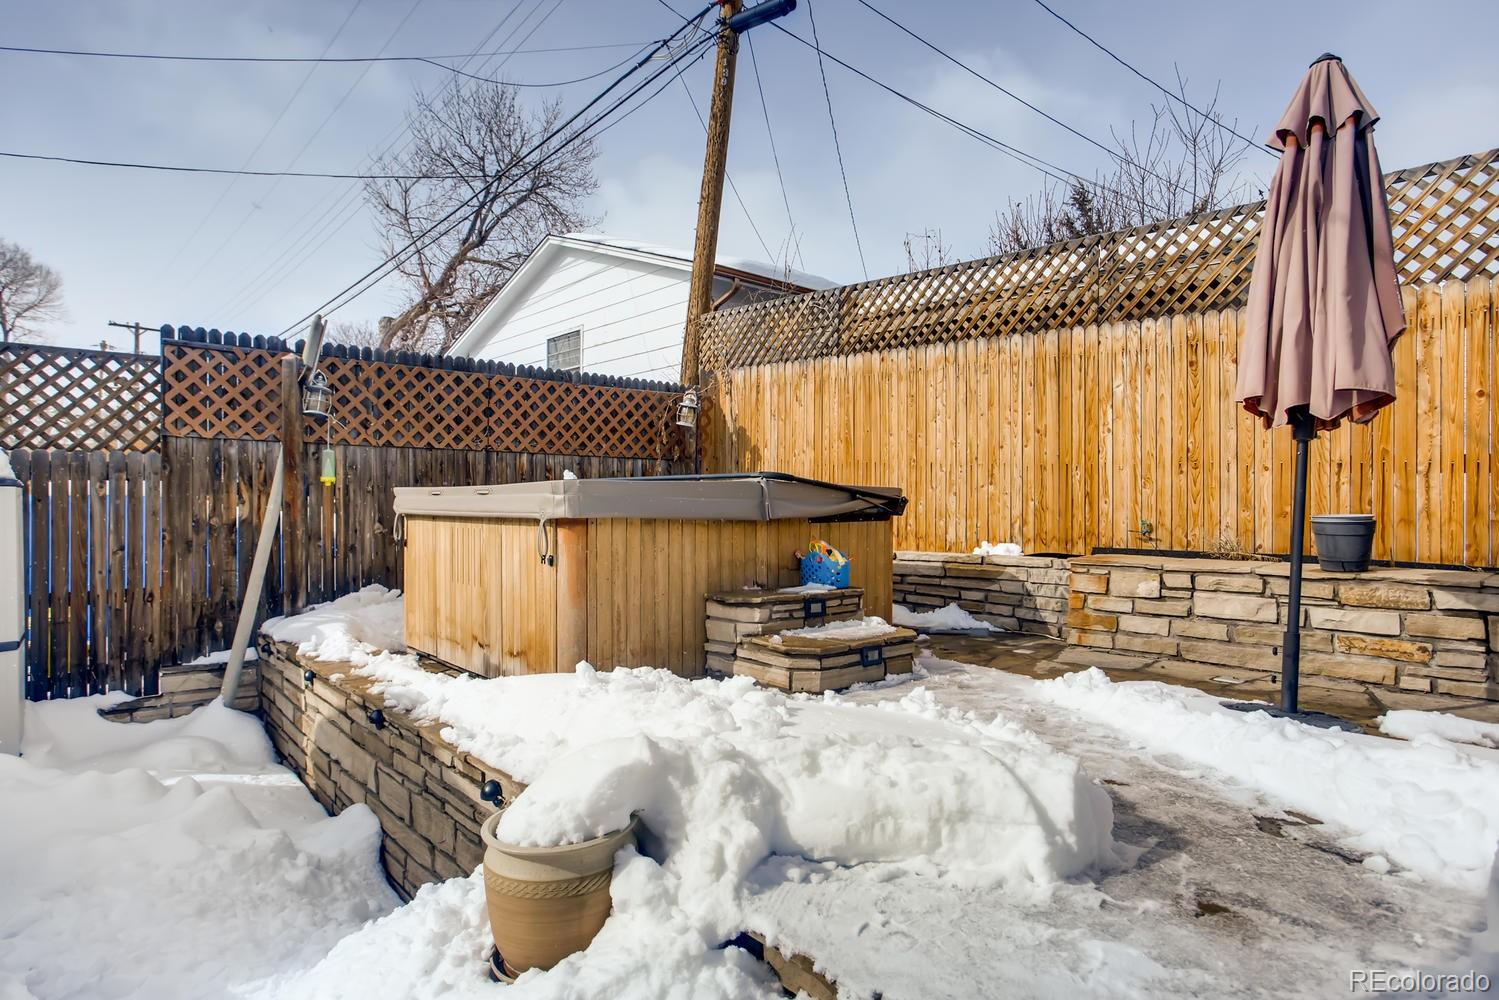 MLS# 4853831 - 23 - 13905 W 6th Place, Golden, CO 80401